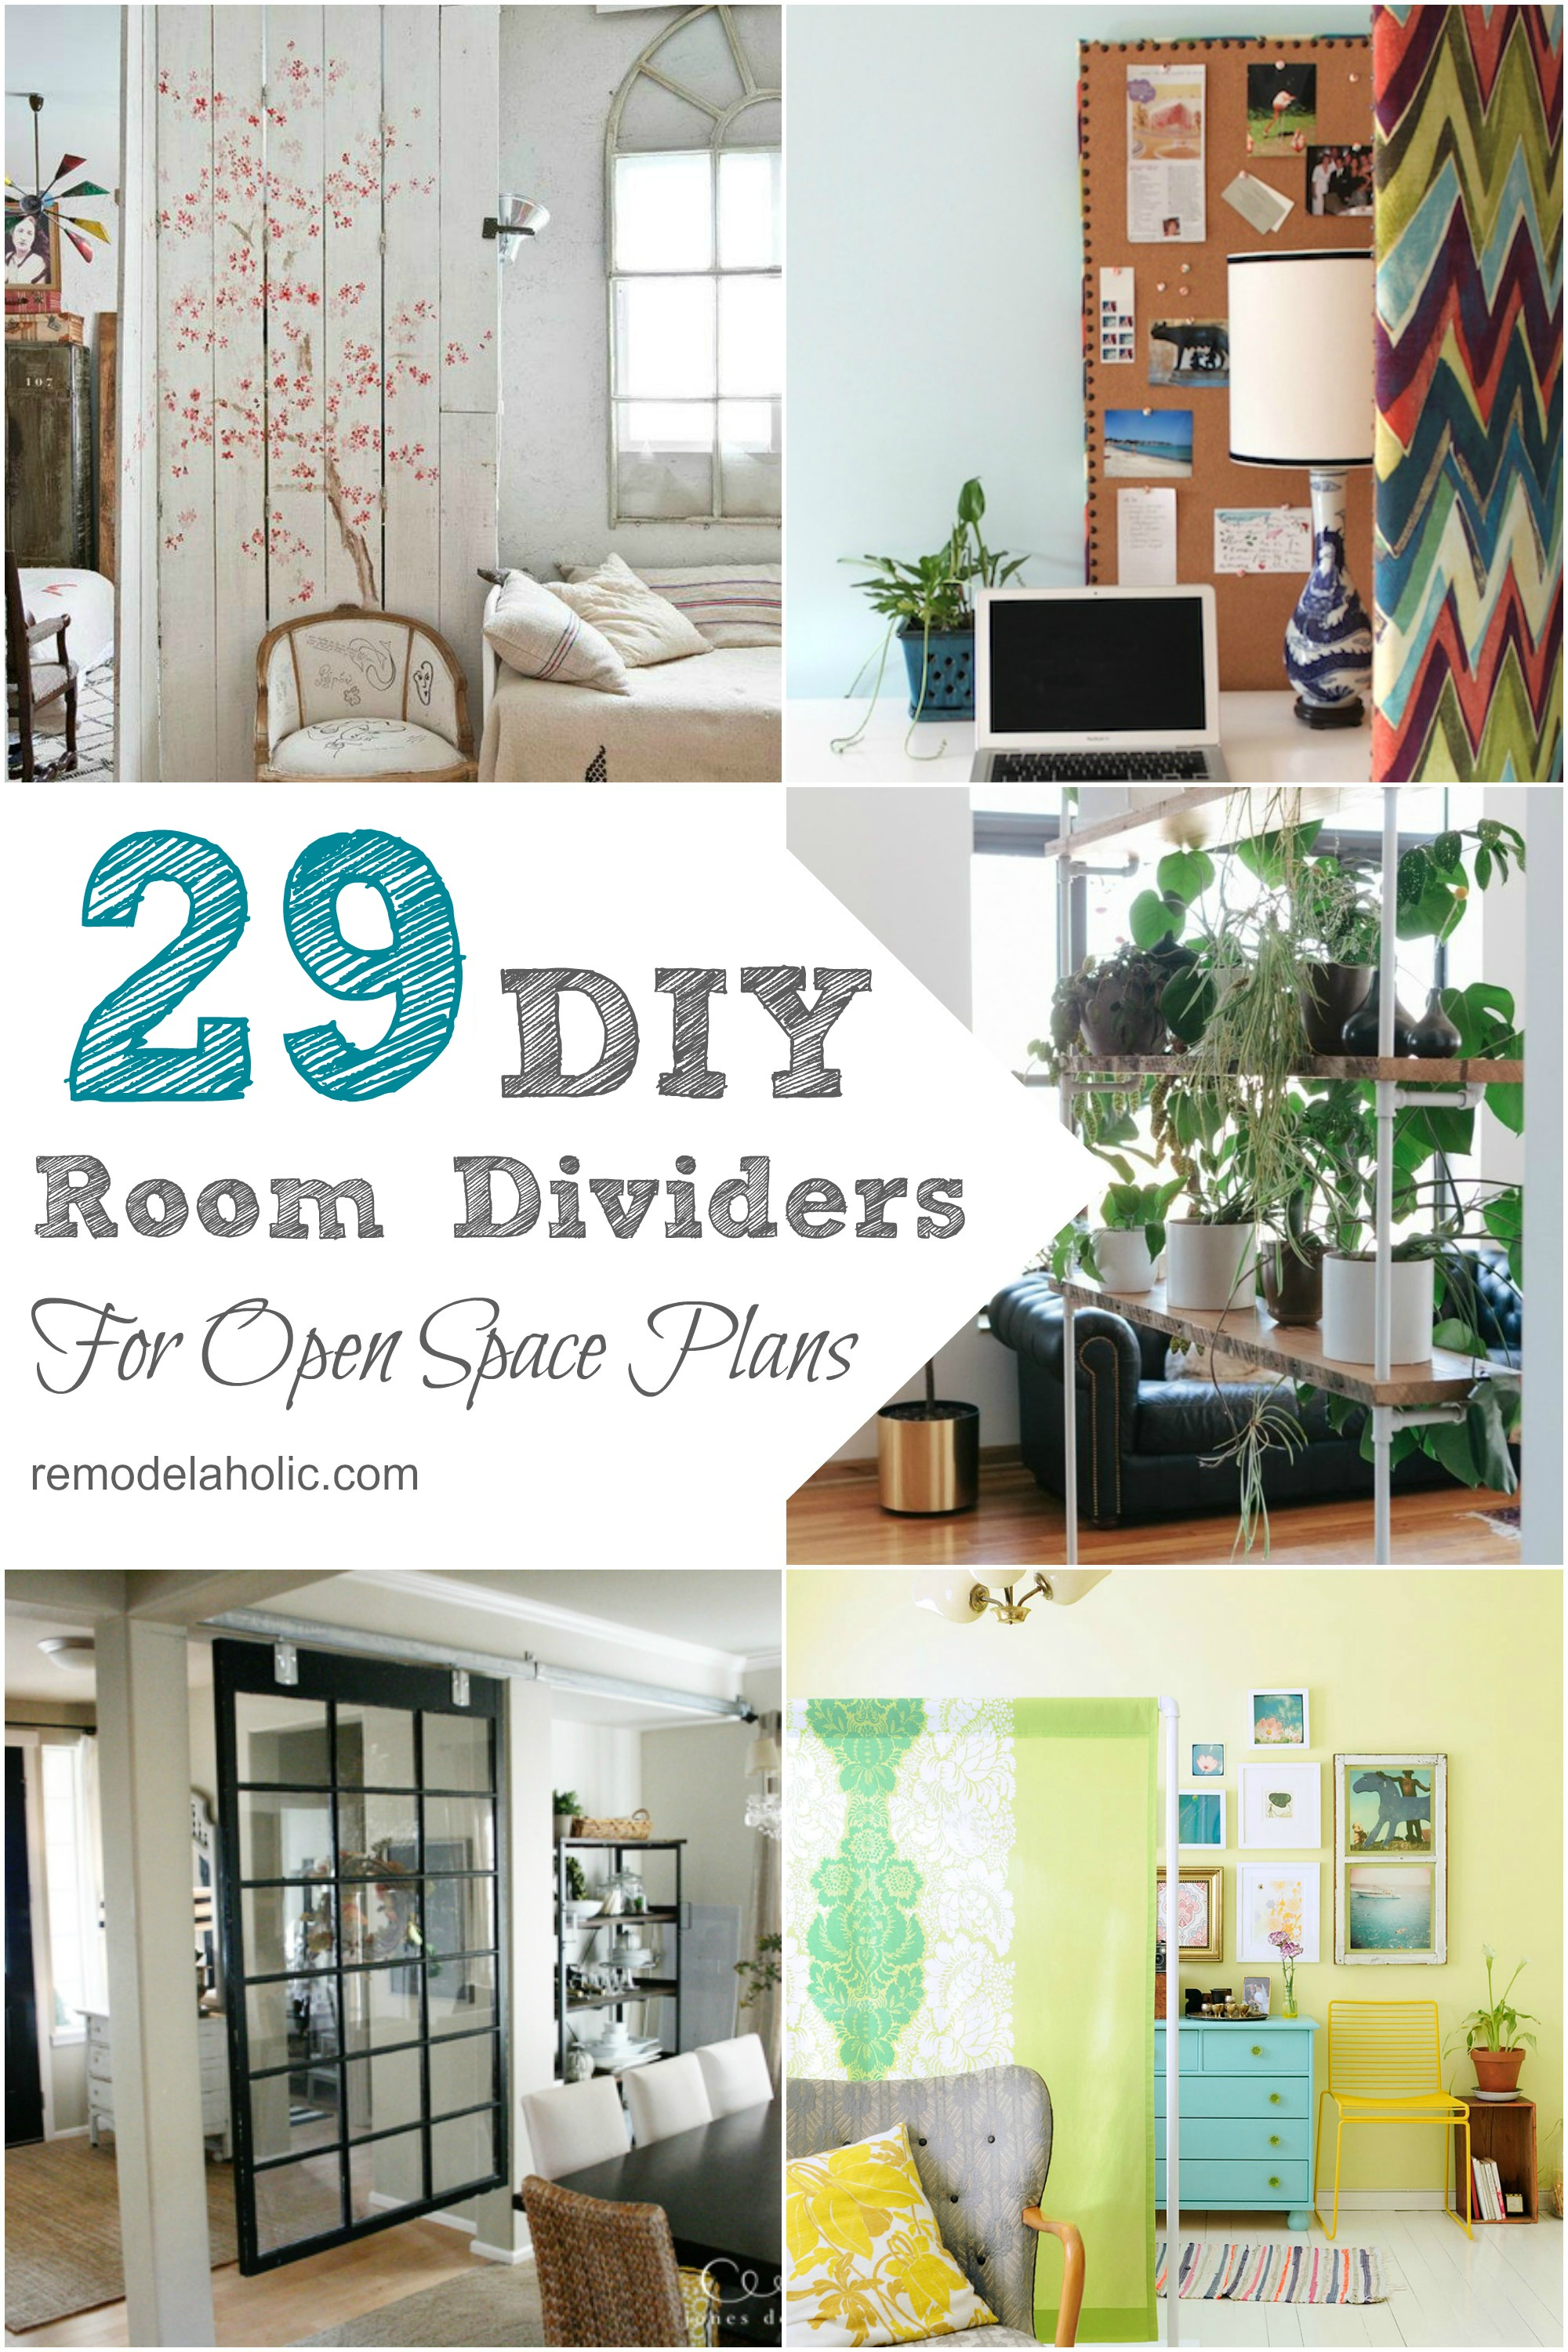 Awesome You Can Create New Spaces In Your Home By Building A Room Divider Or Two.